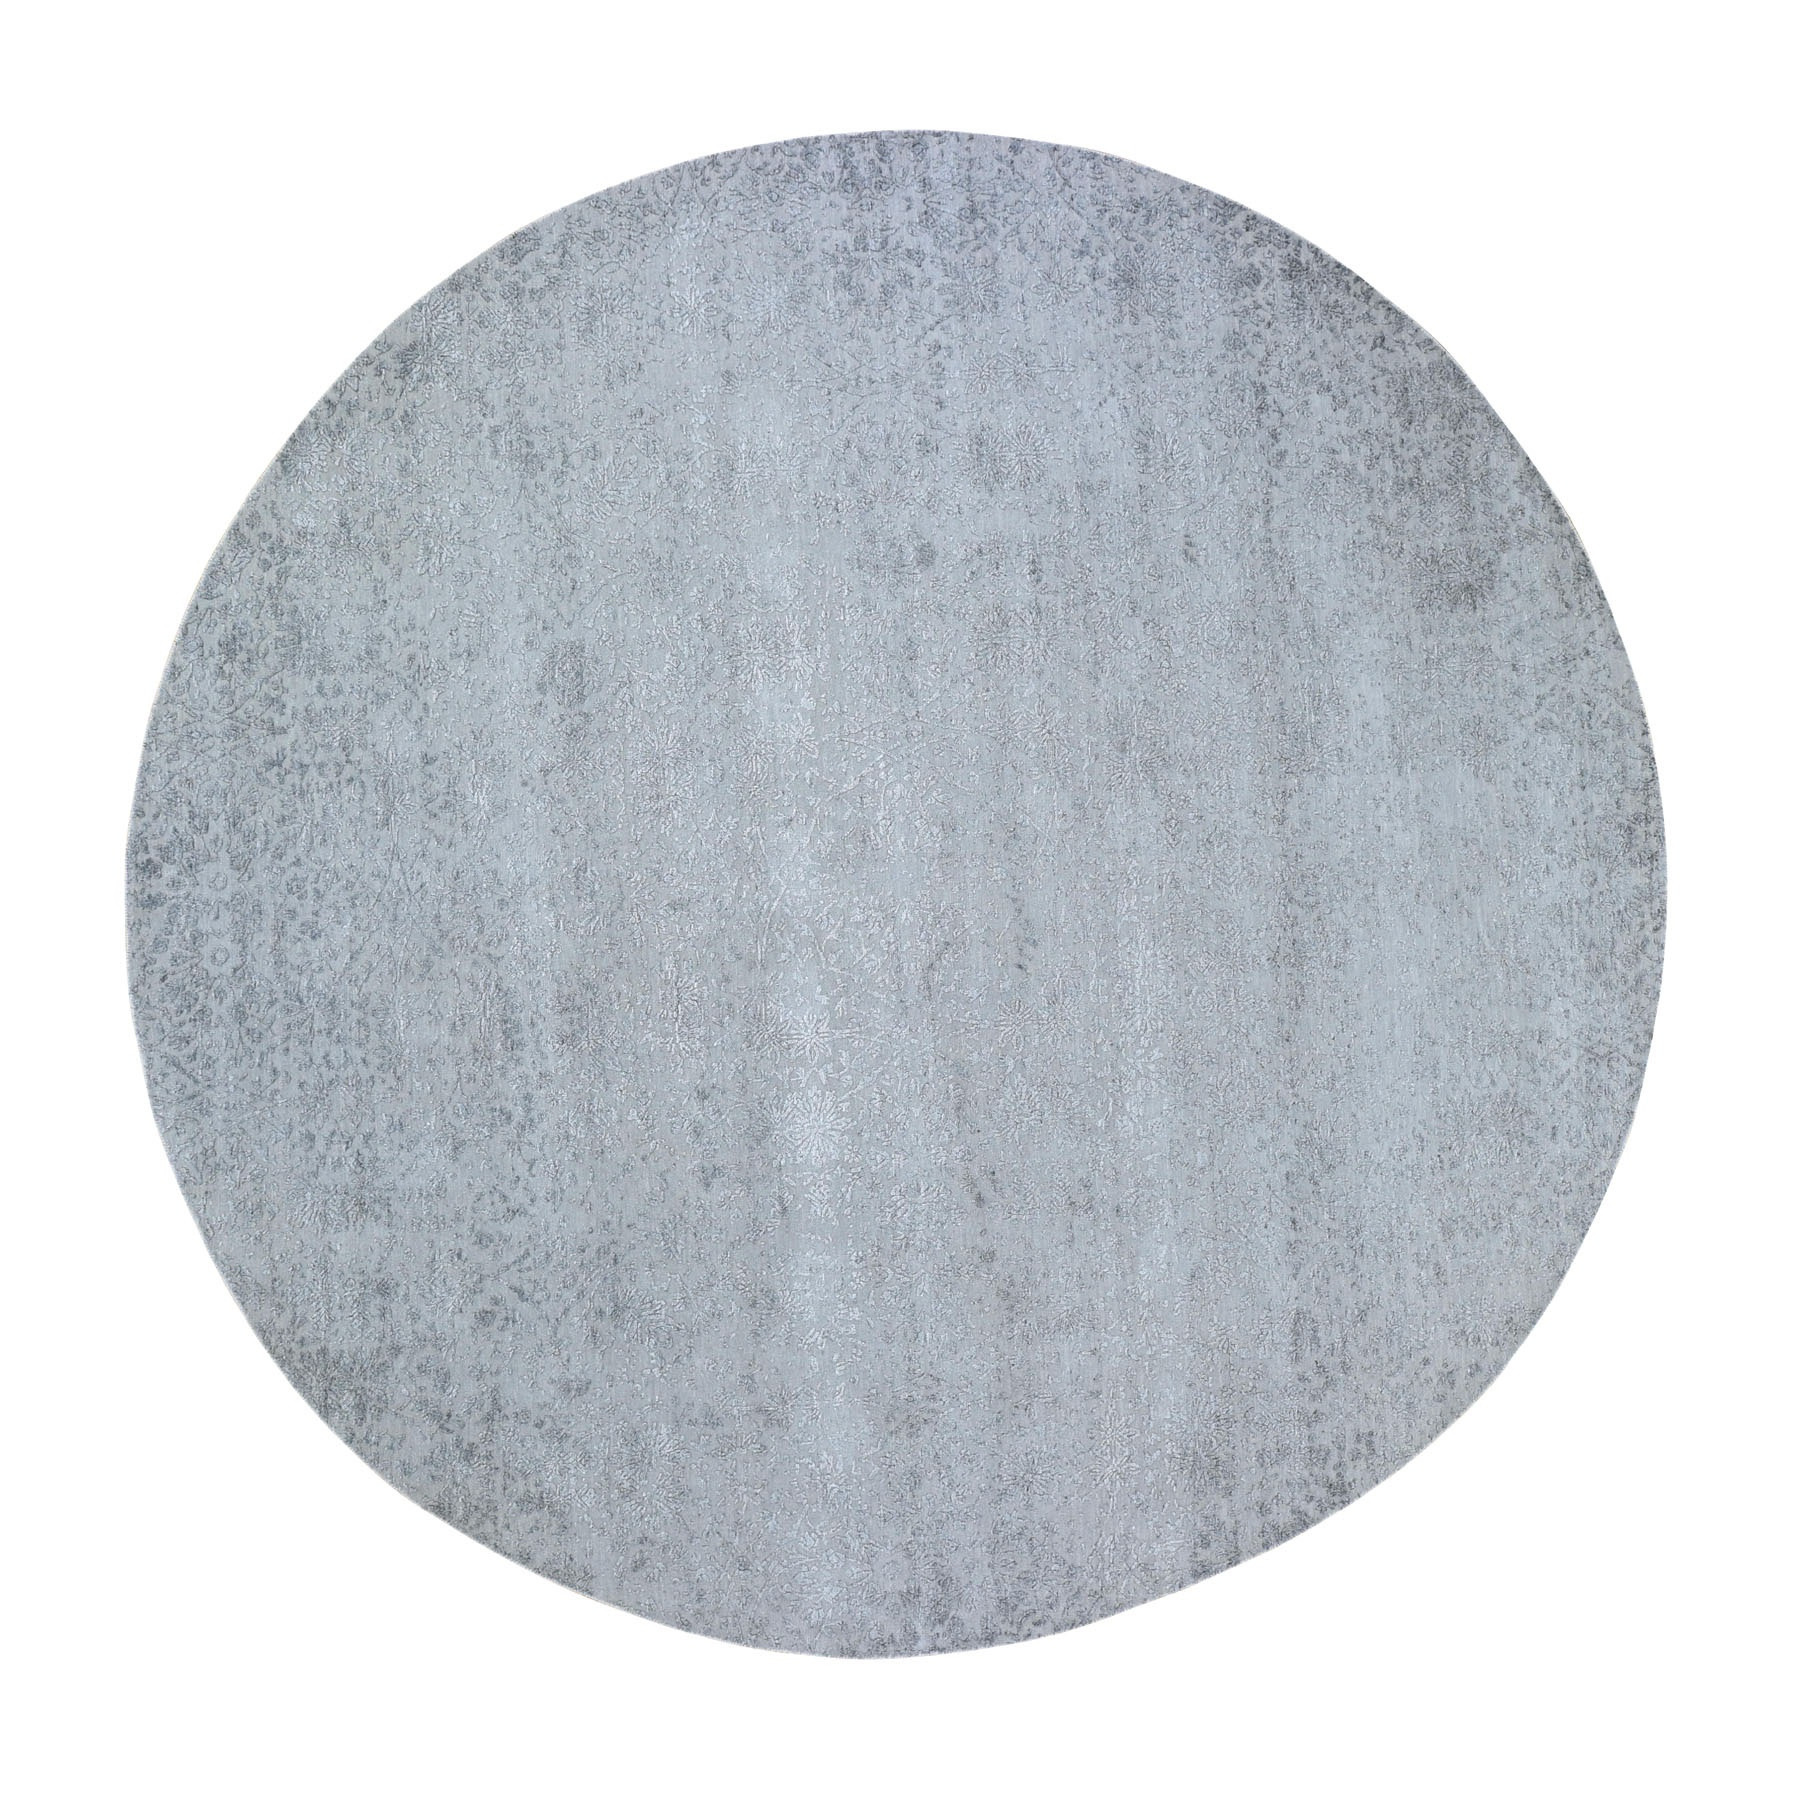 10'x10' Round Silver Erased Design Wool and Silk Hand Woven Oriental Rug